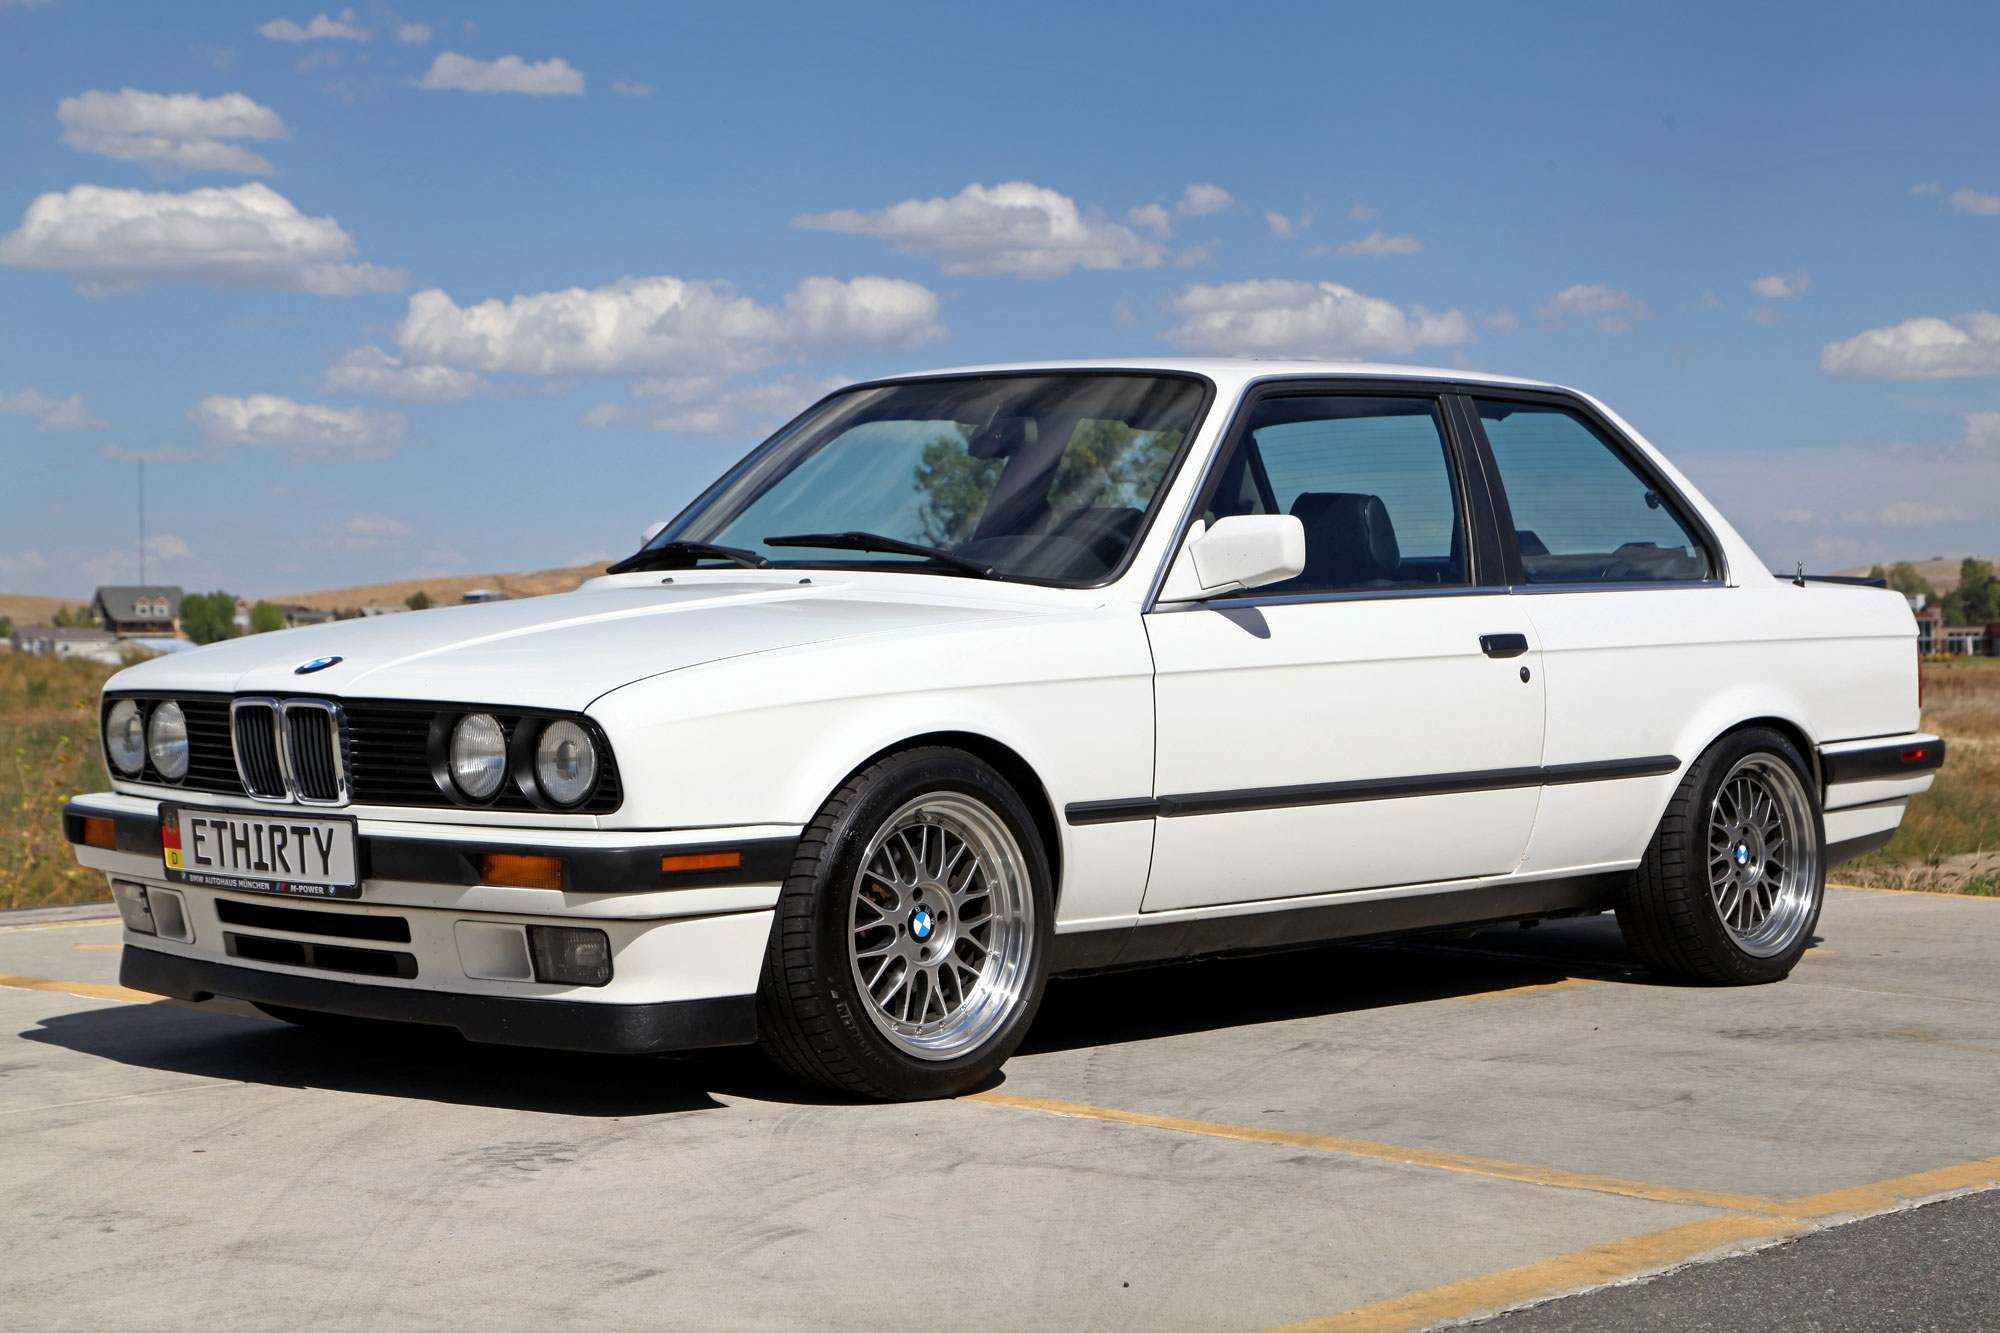 1988 Bmw E30 325is Glen Shelly Auto Brokers Denver